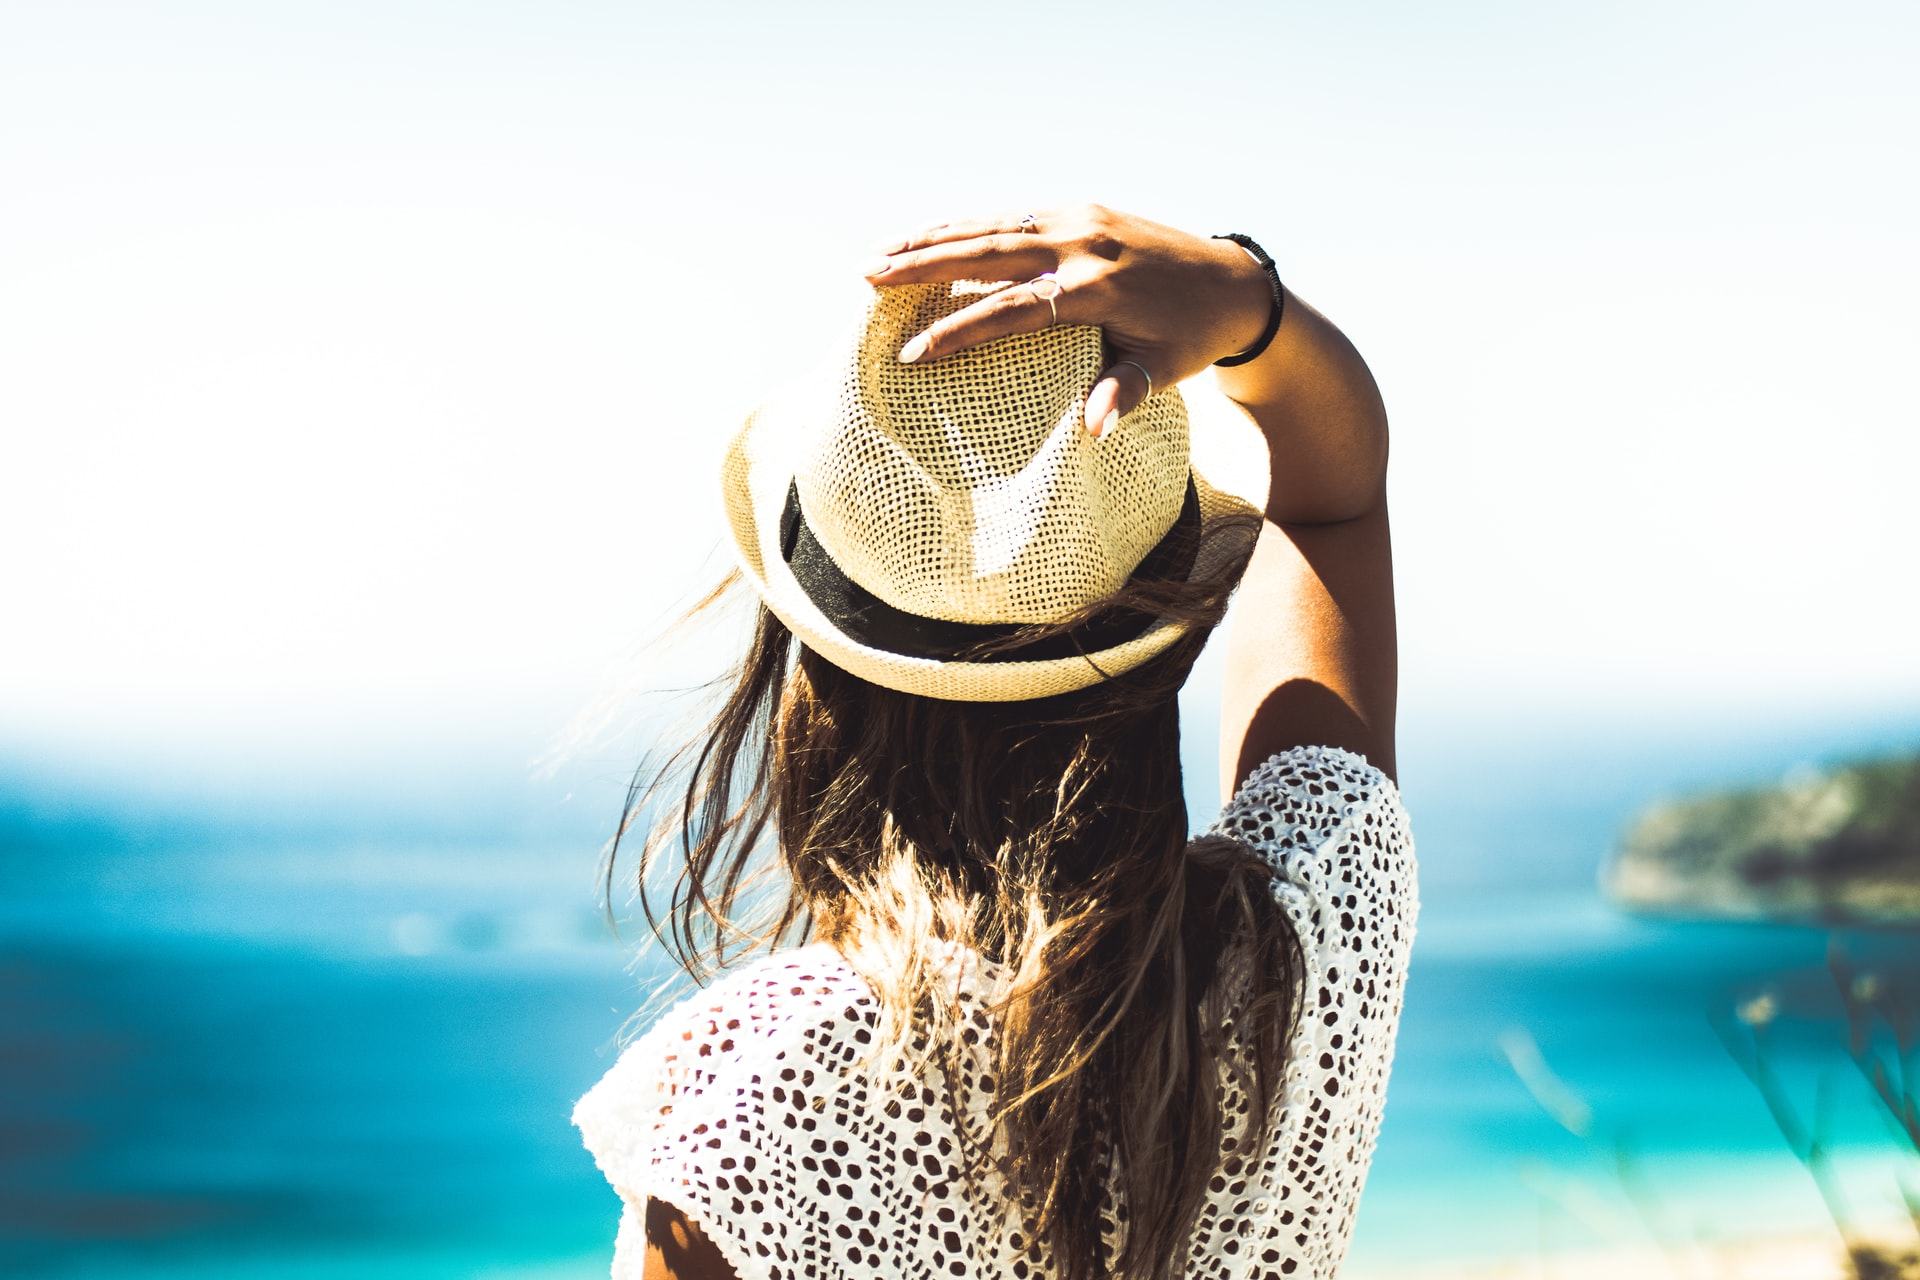 view of person from behind, hand on head, looking out to sea in the summer sun, does sun affect acne